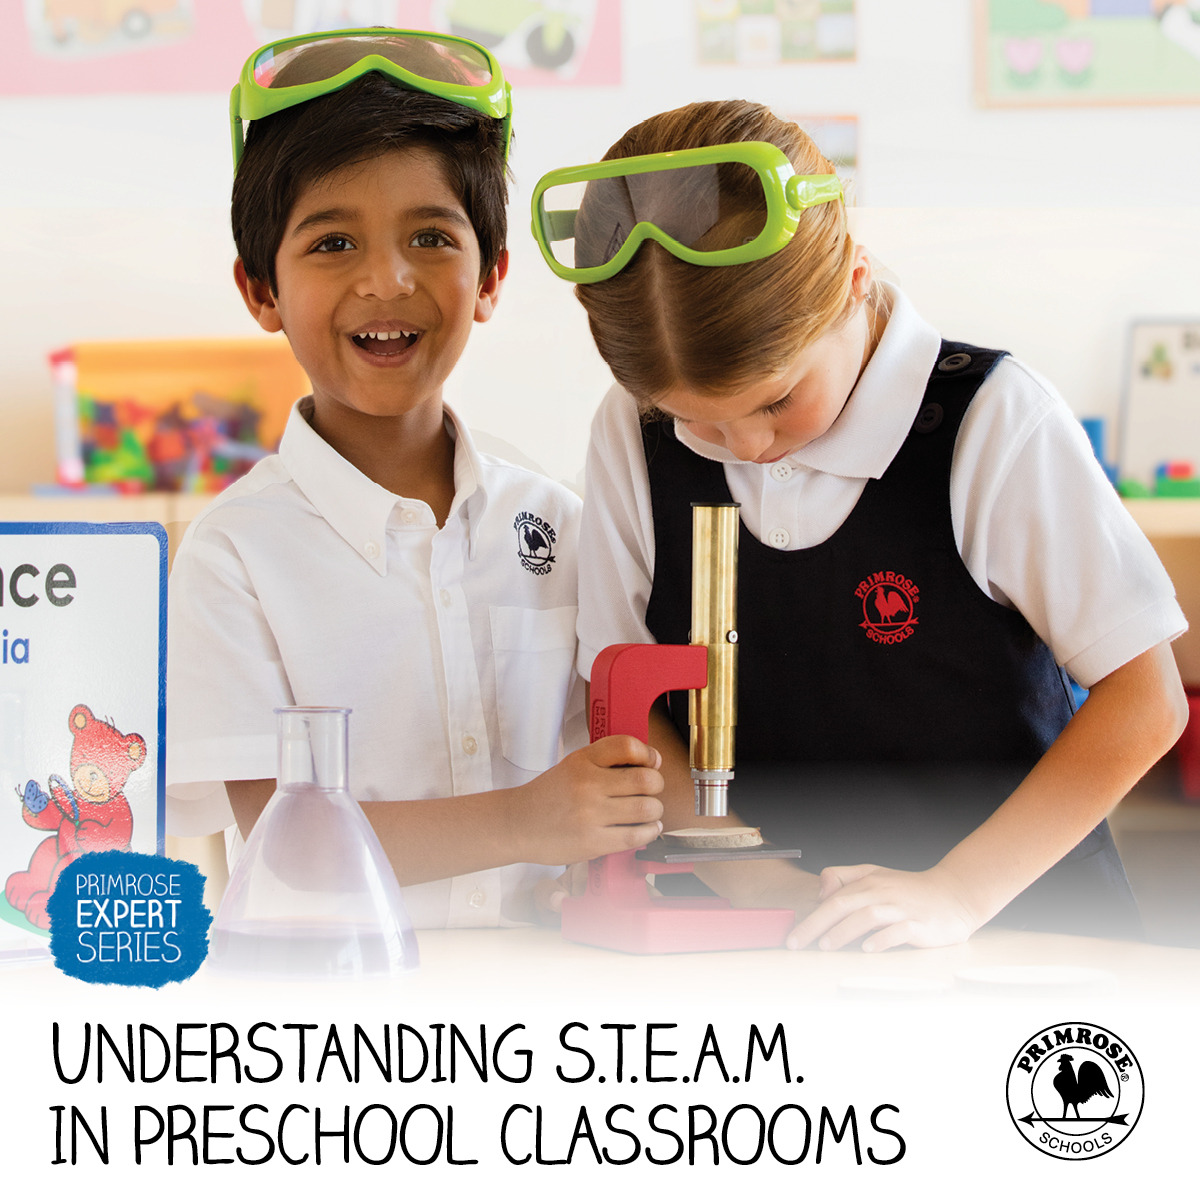 S.T.E.A.M poster featuring a young Primrose student smiling as his classmate looks through a microscope